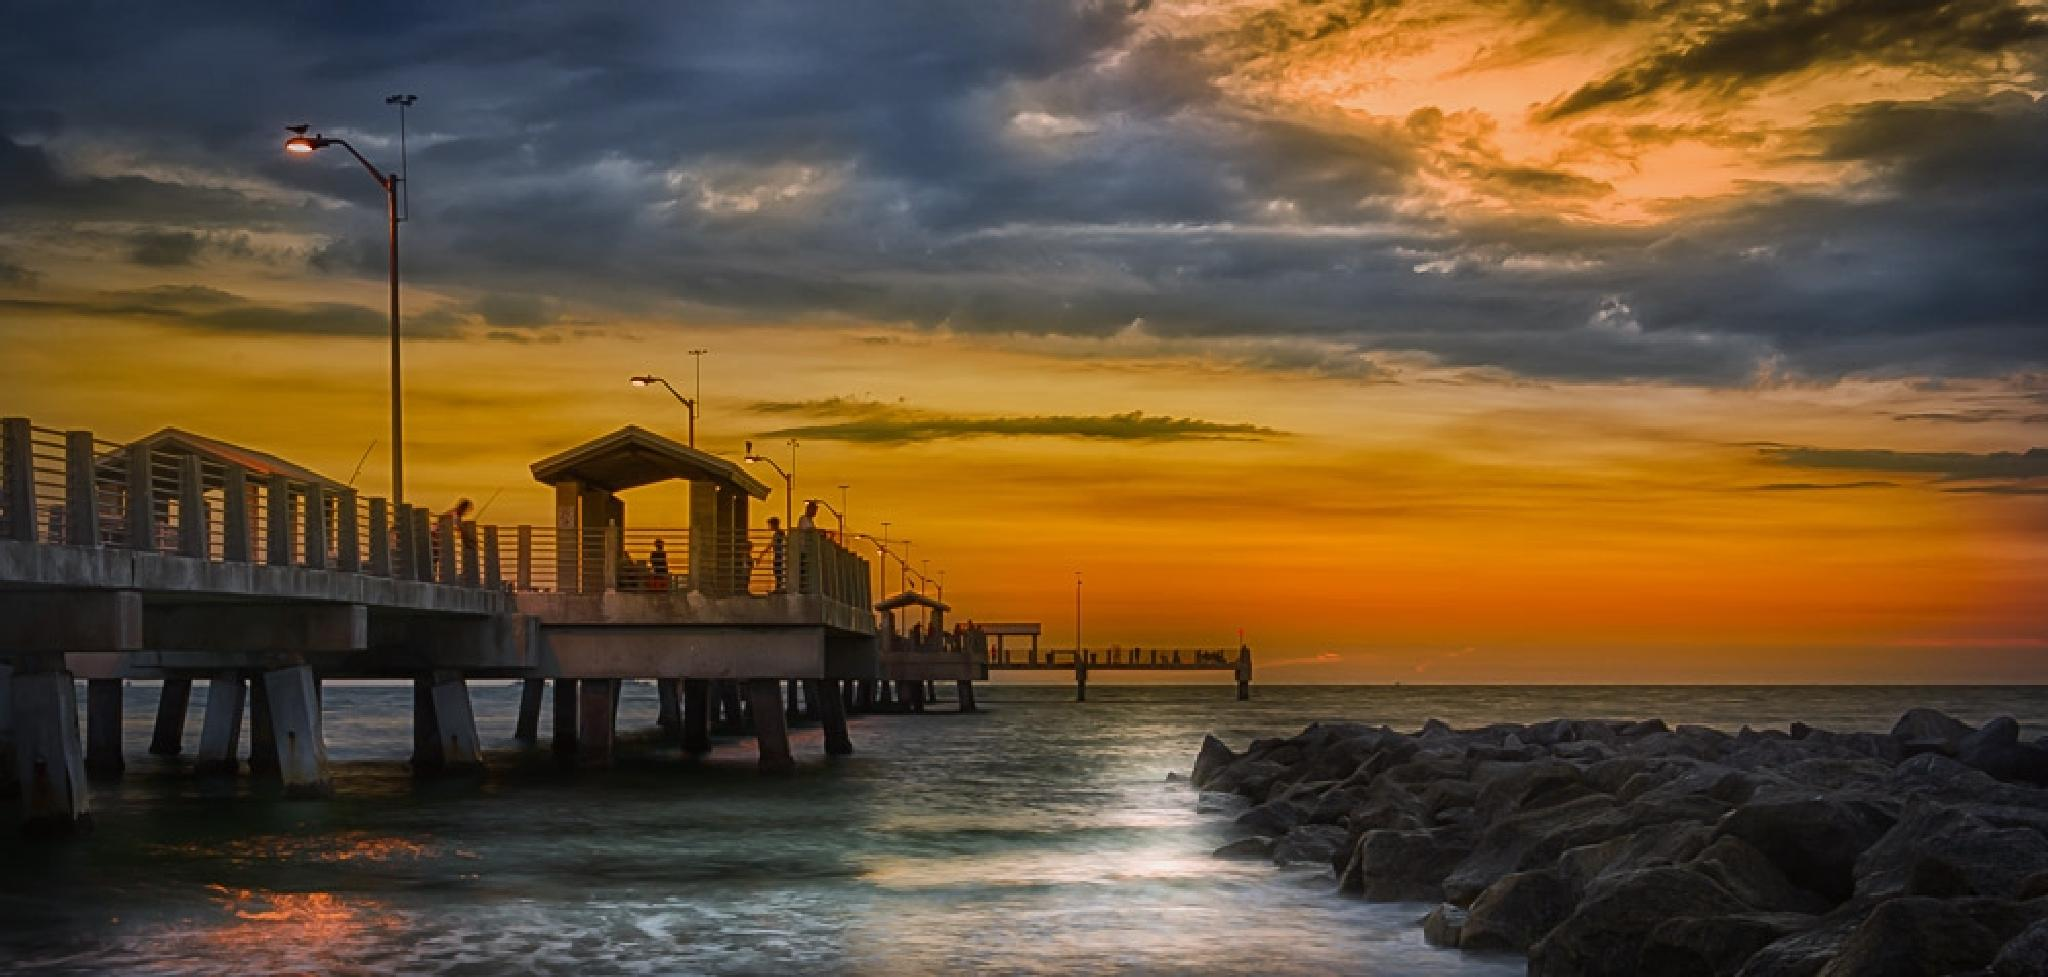 Sunset on the Pier by Viceroy